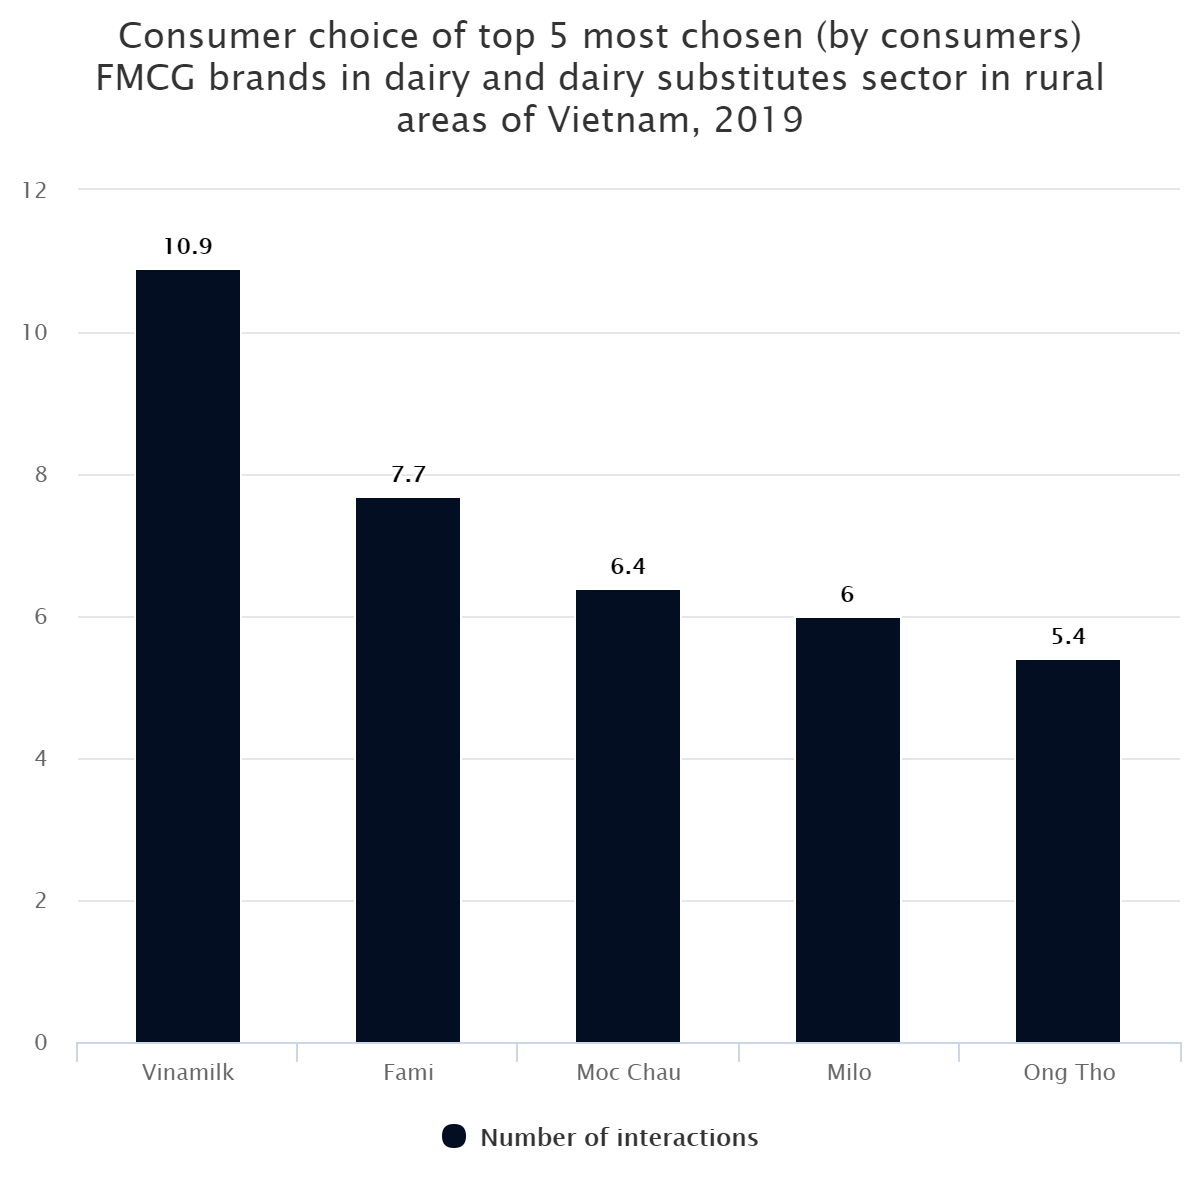 Consumer choice of top 5 most chosen (by consumers) FMCG brands in dairy and dairy substitutes sector in rural areas of Vietnam, 2019